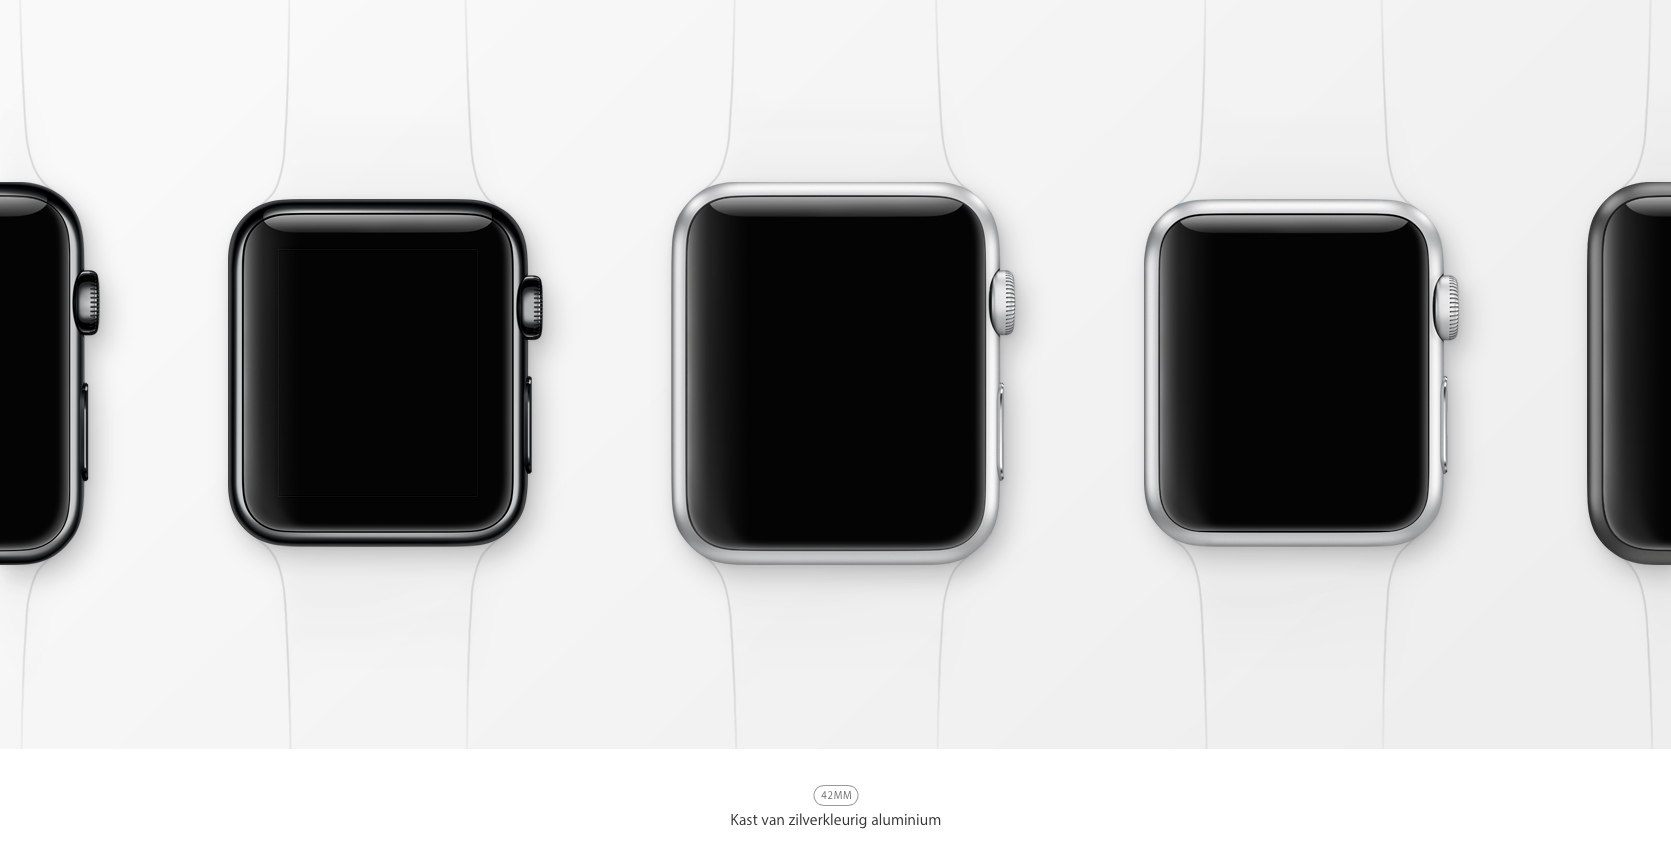 http://www.macfreak.nl/modules/news/images/zAppleWatchInteractievePaginaApple230316.png